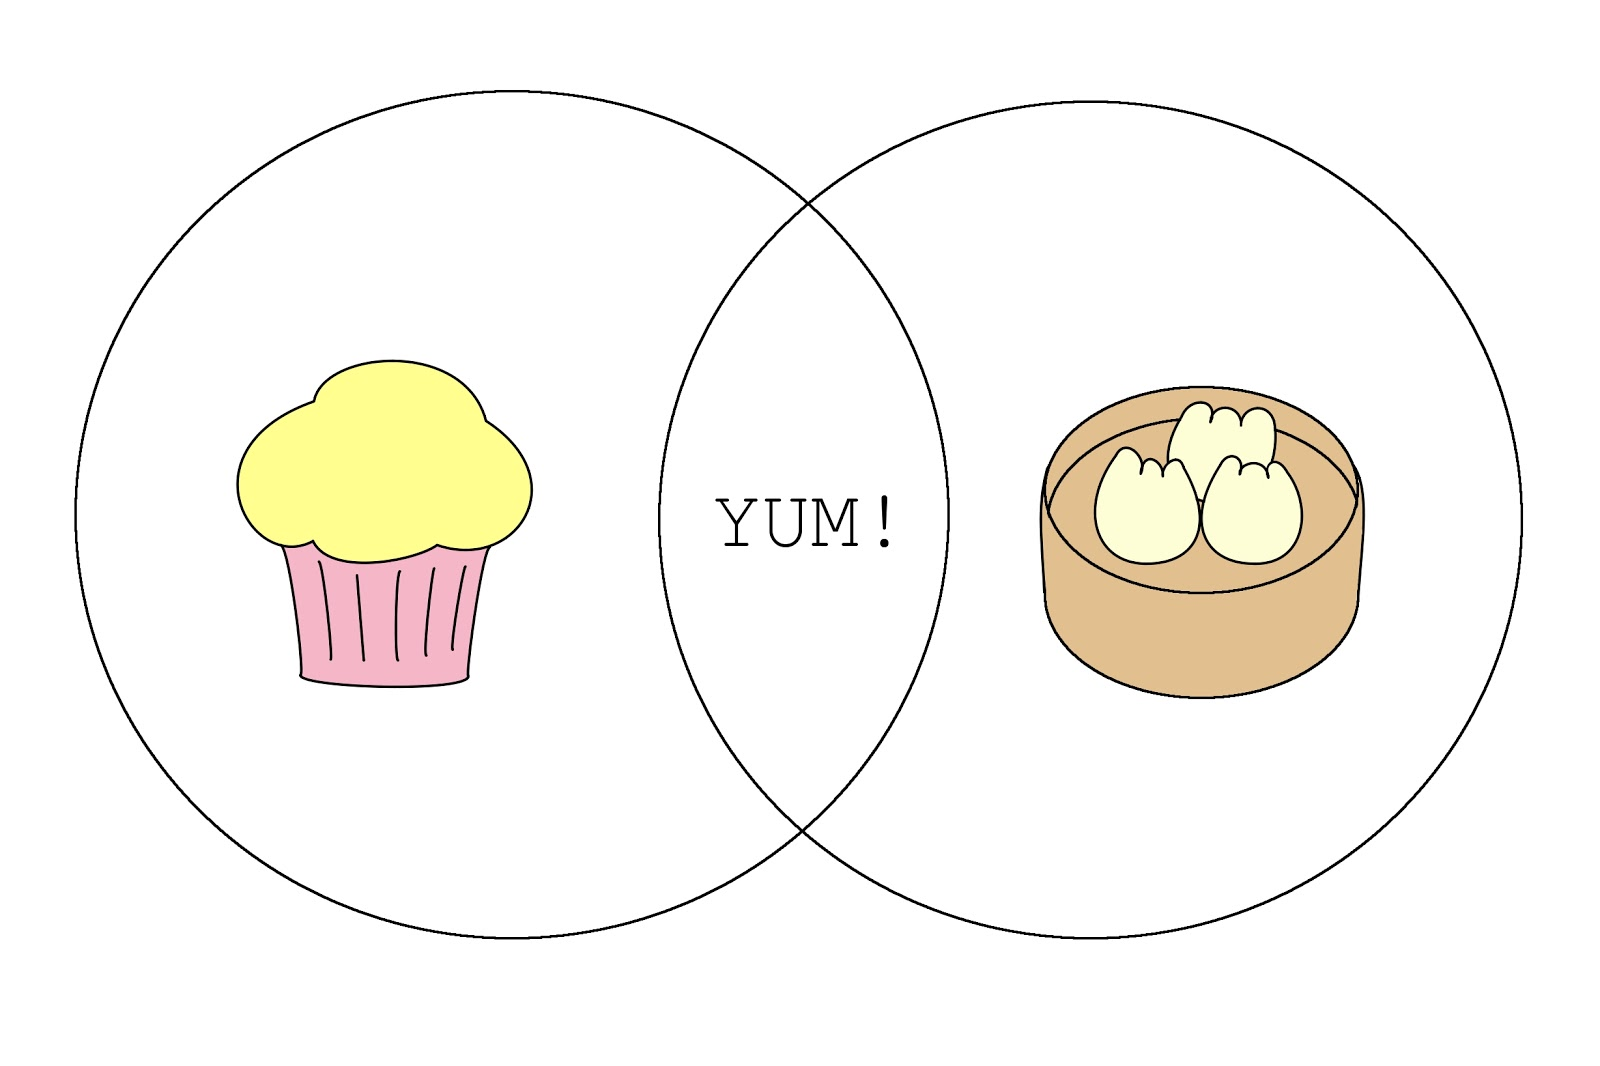 How To Fill Out A Venn Diagram Johnson Outboard Motor Parts Black And White Sesame Cupcakes With Sweet Bean Filling